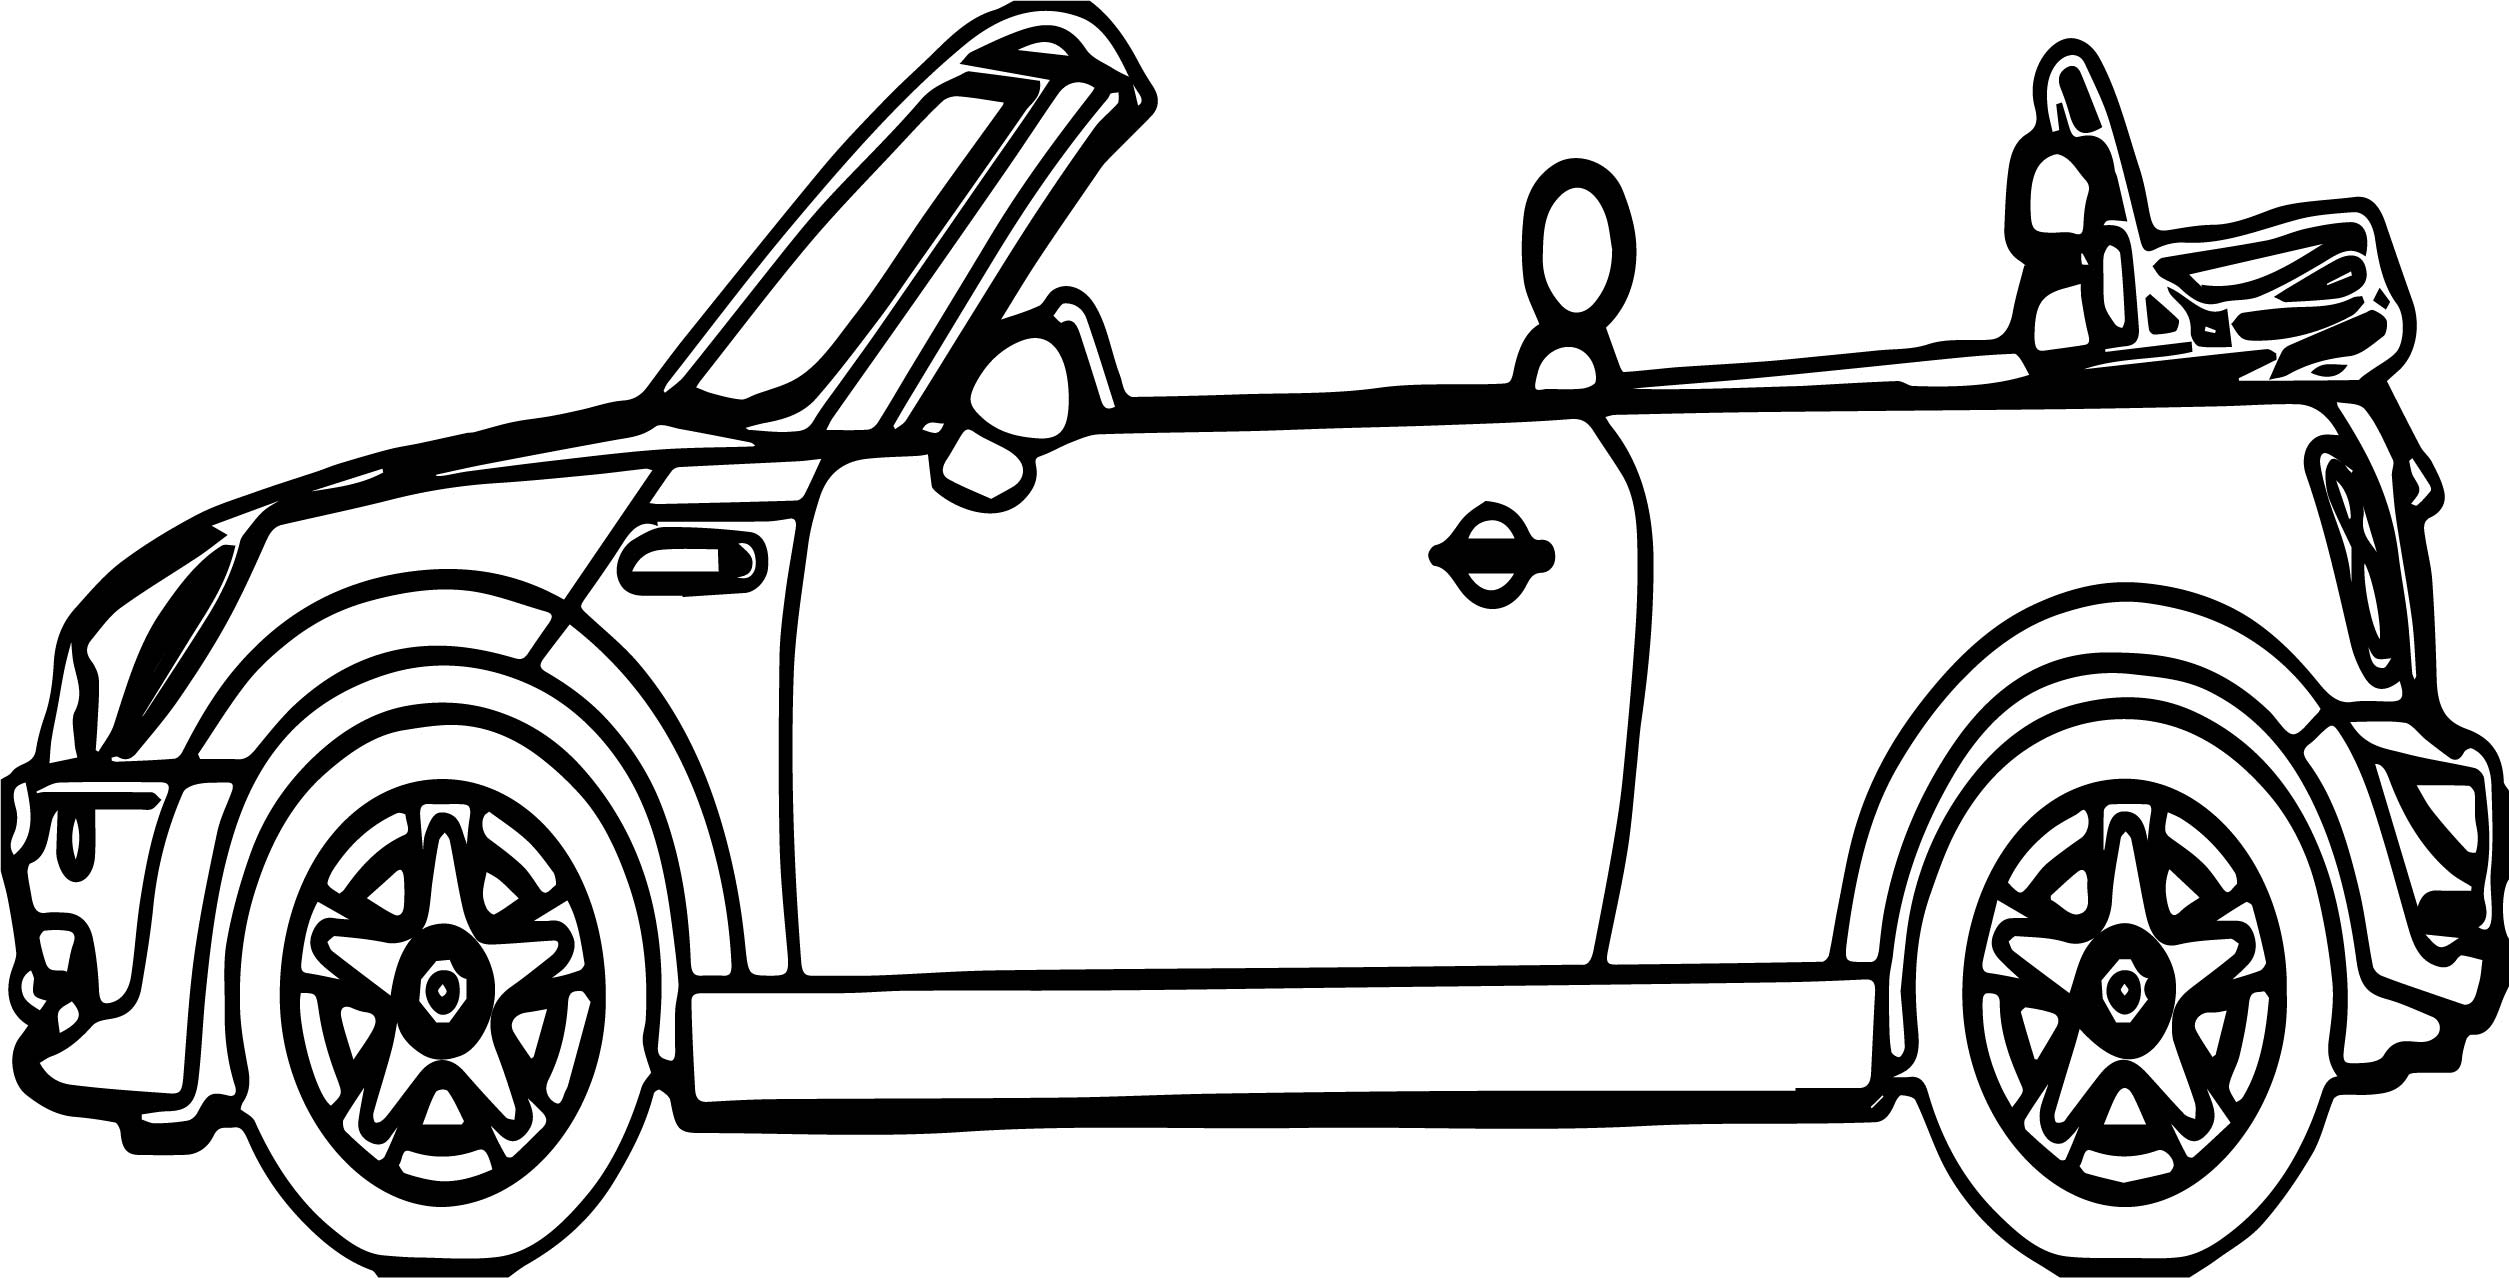 toy car coloring page sport car coloring pages coloring pages to download and car coloring toy page